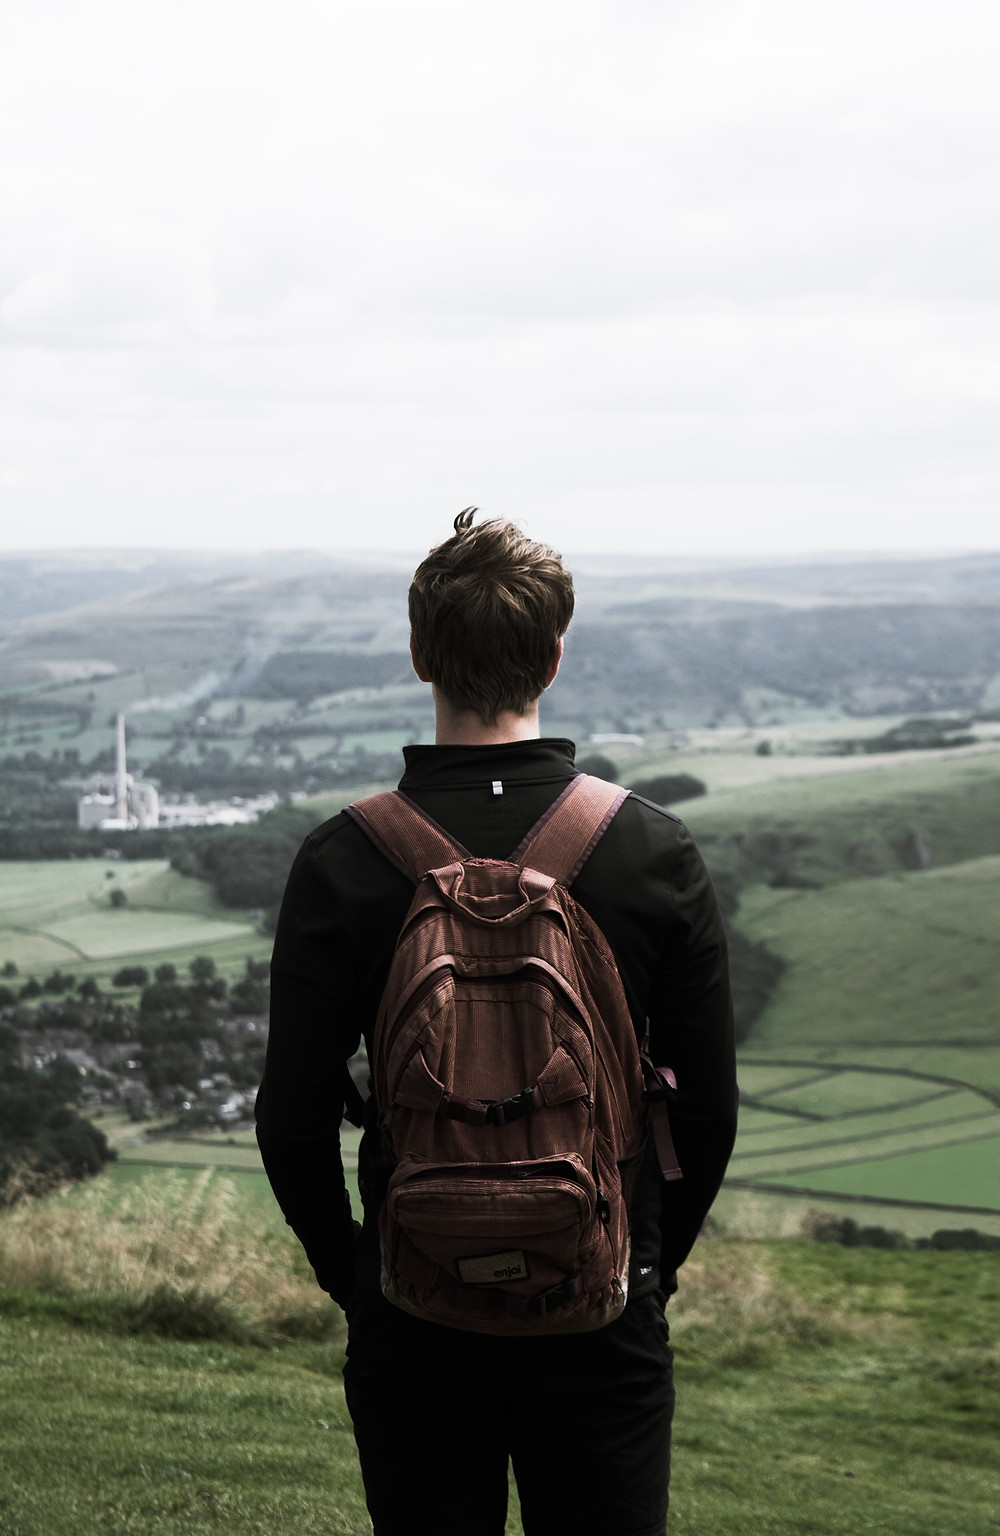 Teenage boy mindfulness looking countryside fresh air coronavirus The Parents' Guide to